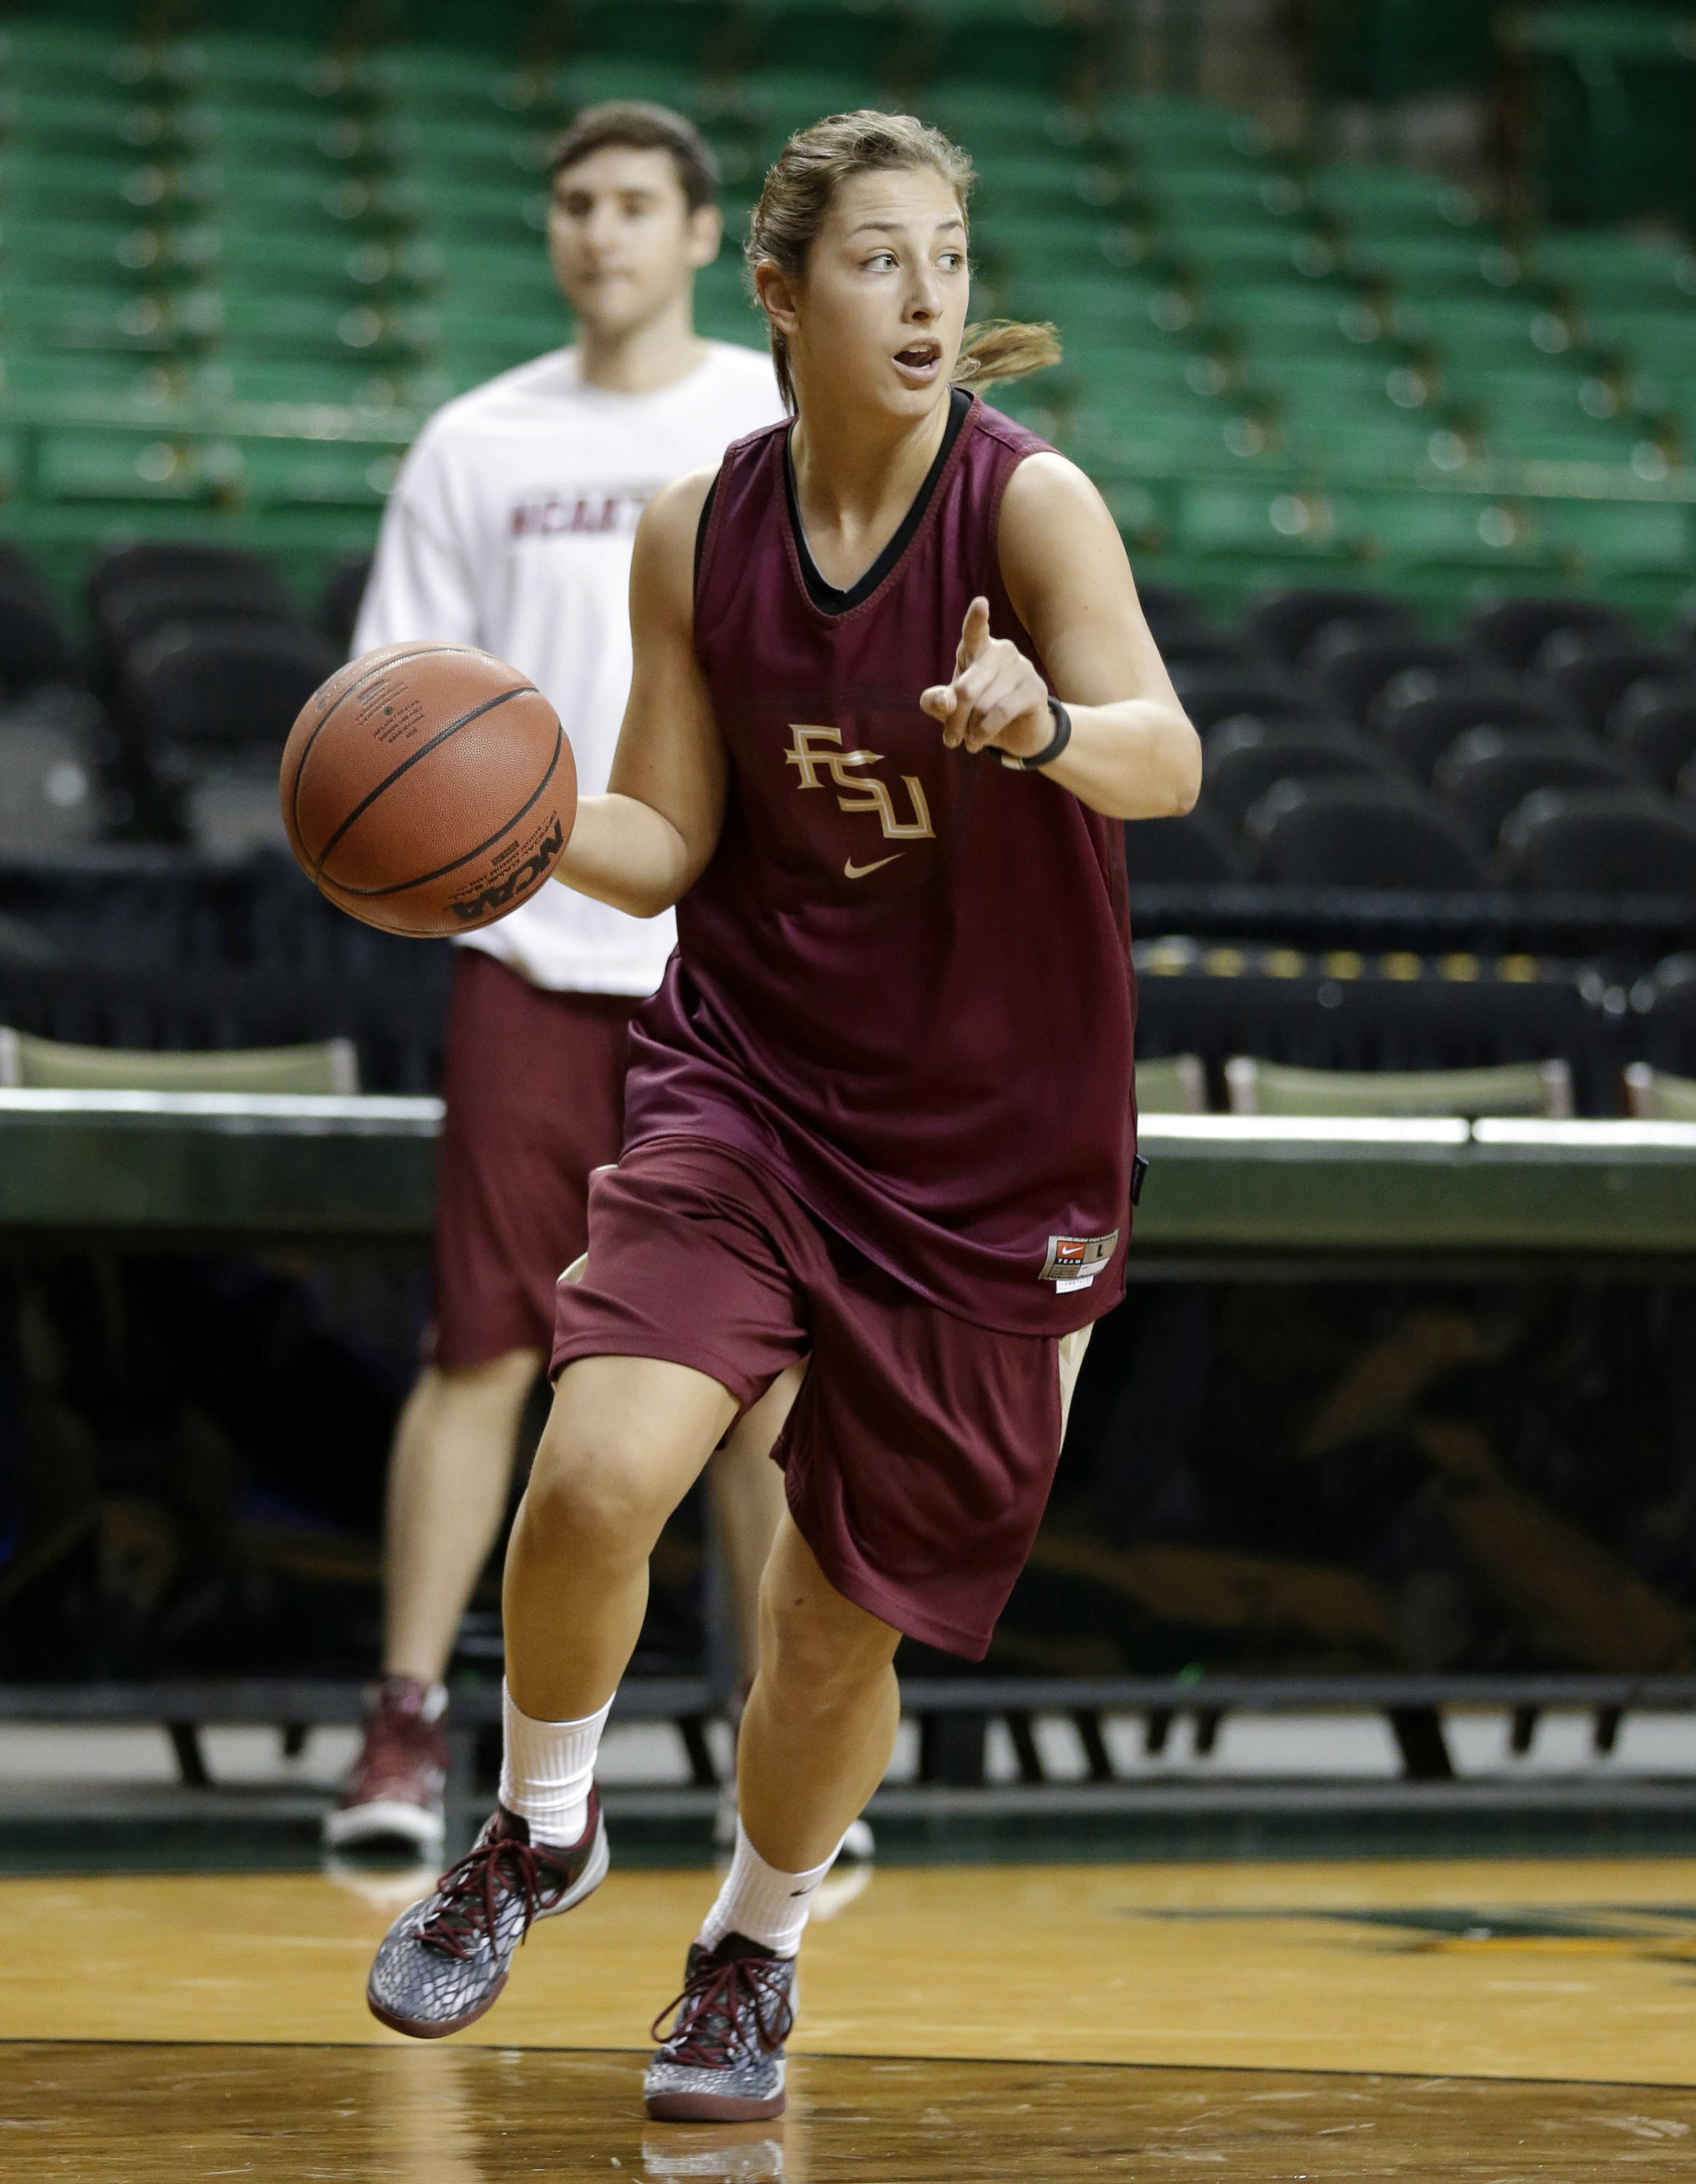 Florida State guard Leonor Rodriguez runs drills during practice for a first-round game in the women's NCAA college basketball tournament Saturday, March 23, 2013, in Waco, Texas. FSU will play Princeton on Sunday. (AP Photo/Tony Gutierrez)